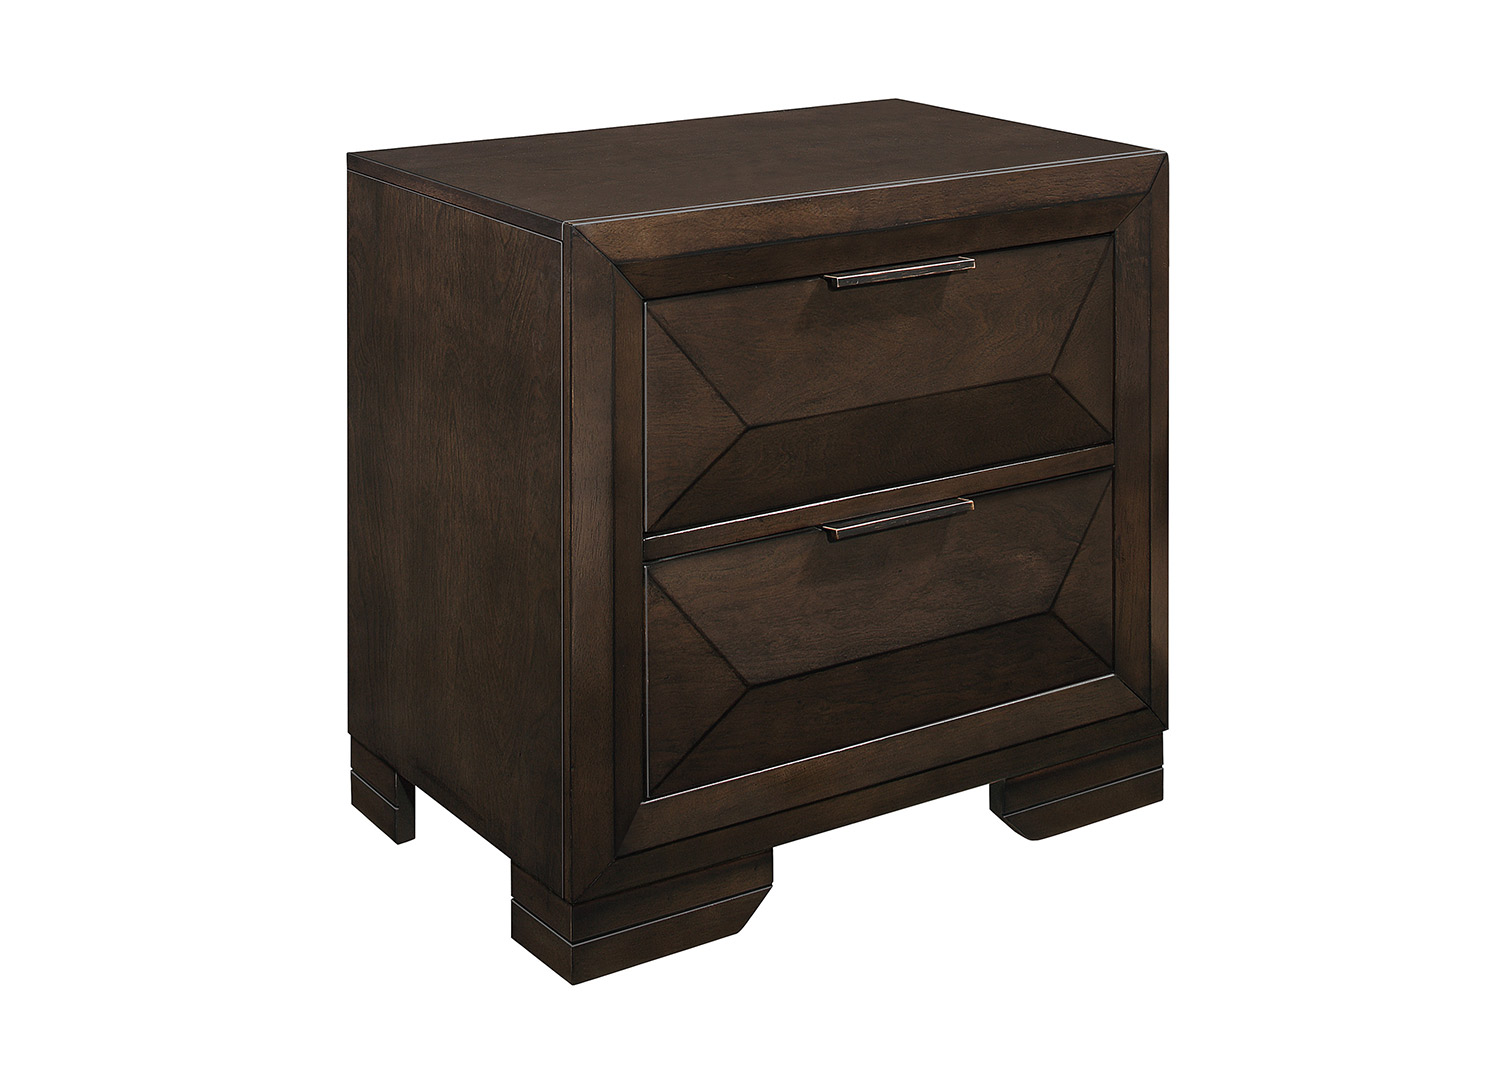 Homelegance Chesky Night Stand - Warm Espresso